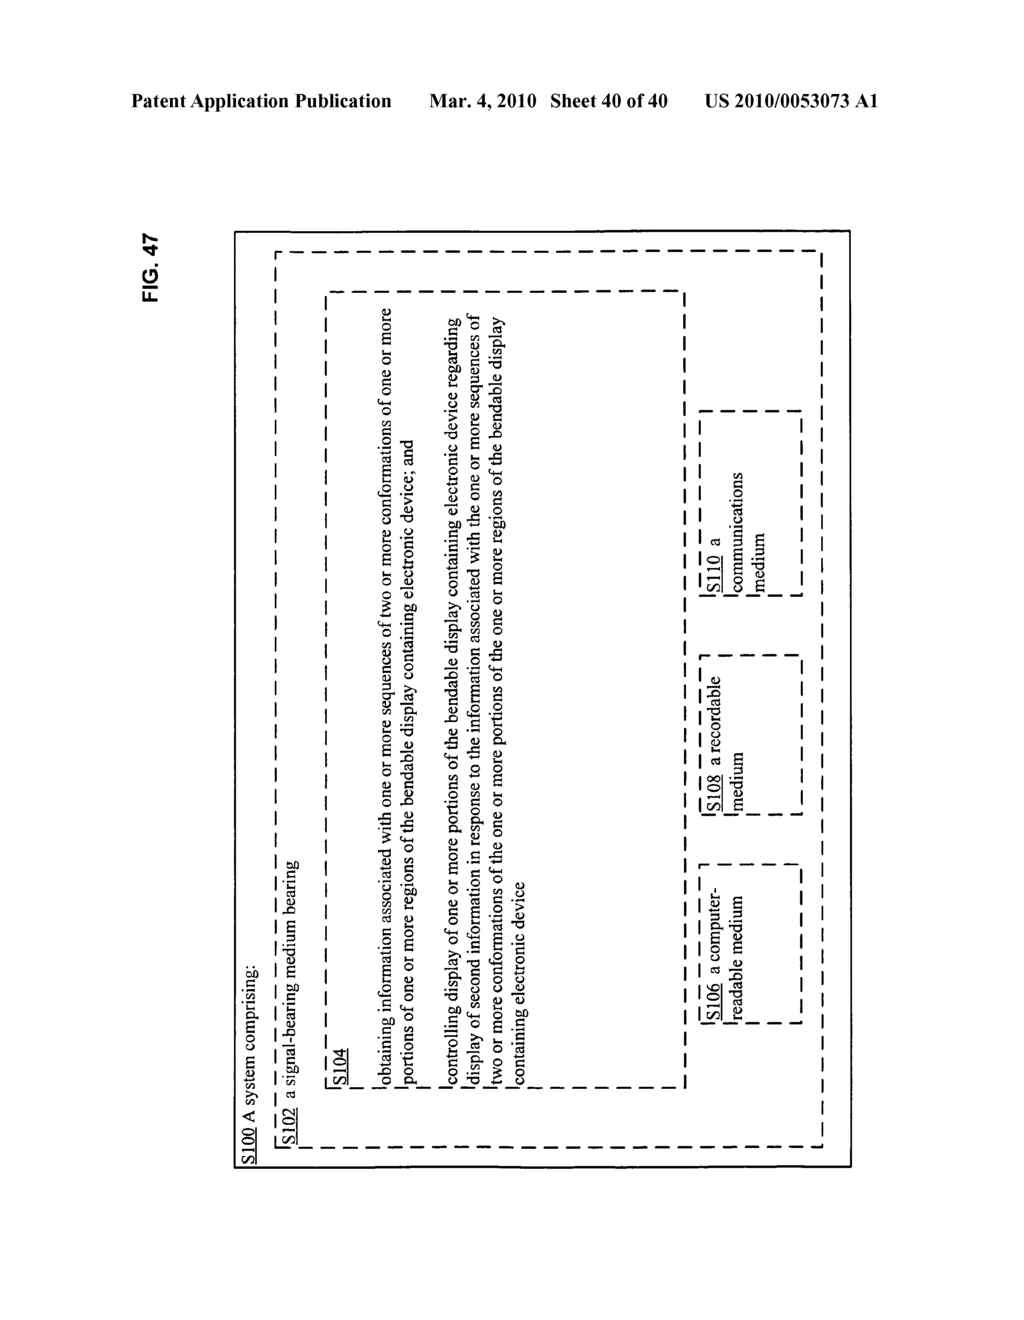 Display control based on bendable display containing electronic device conformation sequence status - diagram, schematic, and image 42